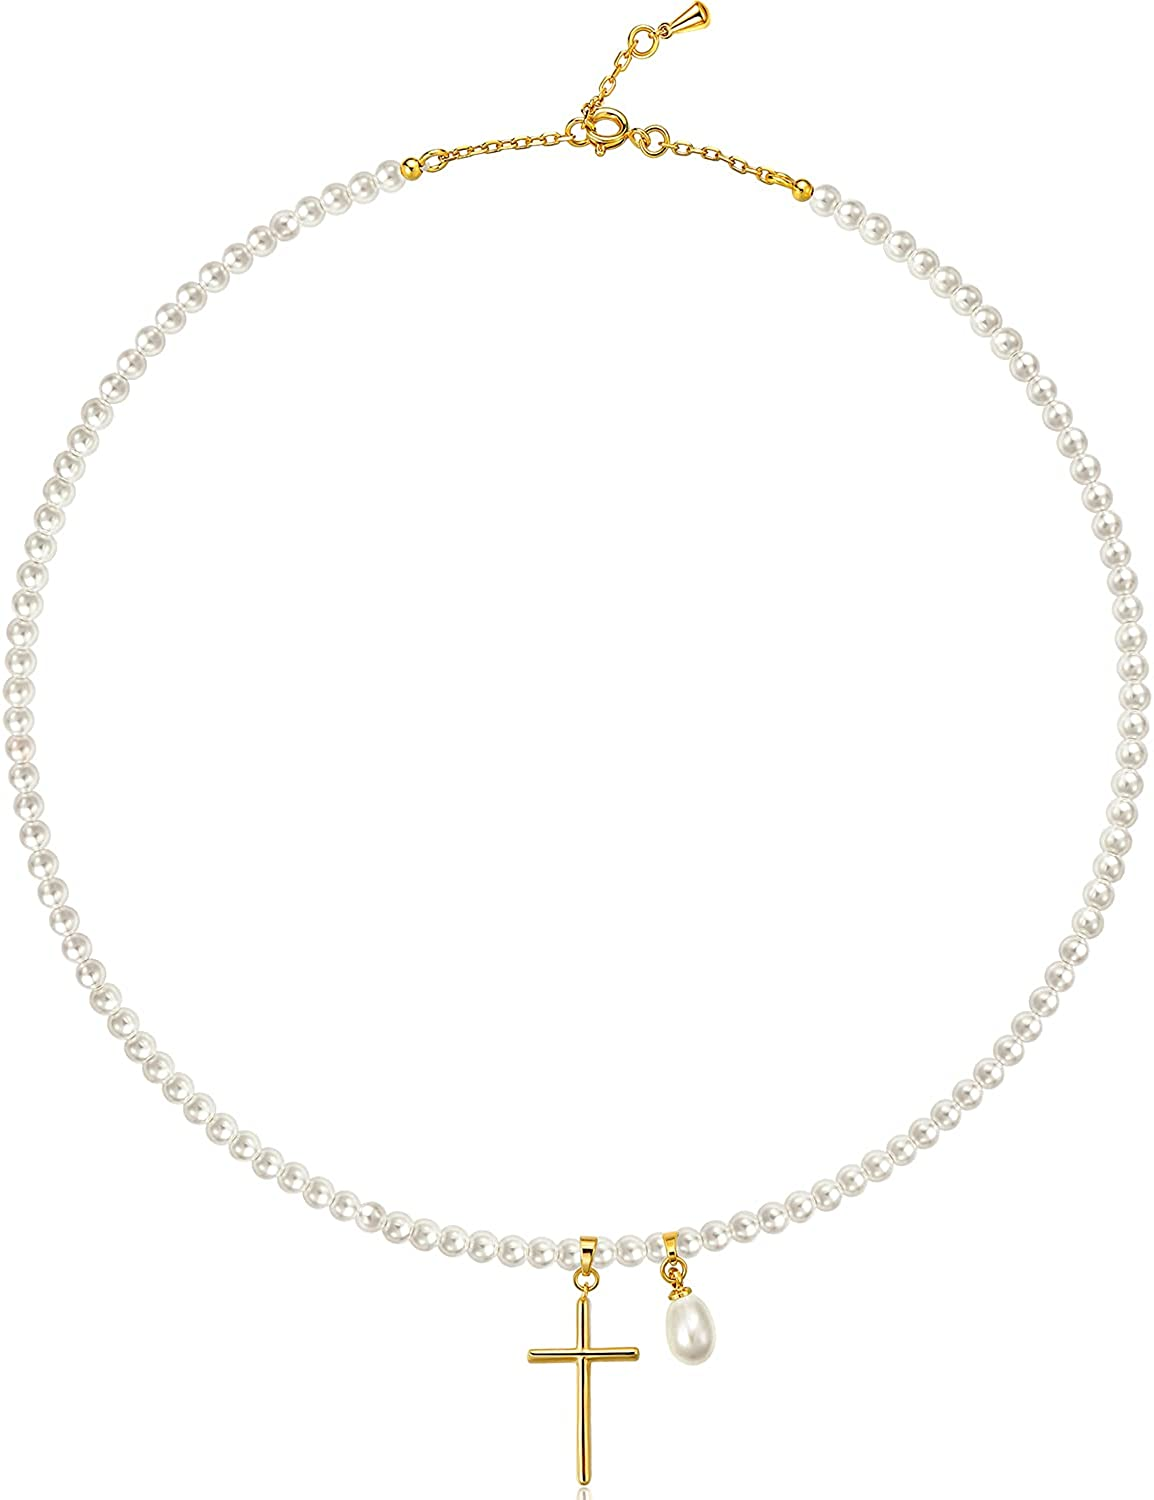 Yorzahar Pearls Choker Necklace Handpicked Cross Pendent Necklace 18K Gold Plated Pearls Strands Choker for Women Day Jewelry